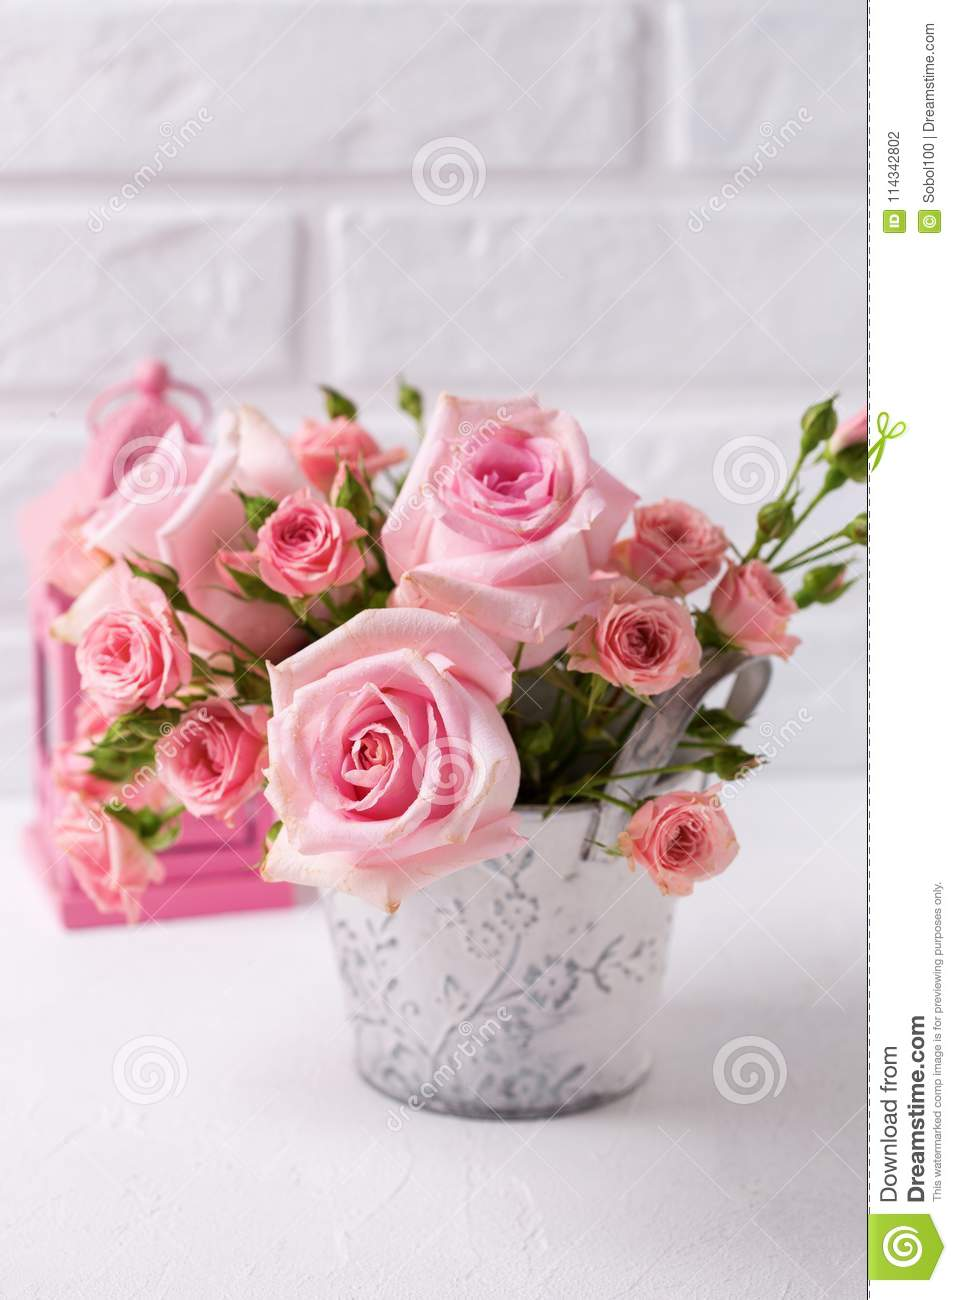 Bunch Of Tender Pink Roses Flowers And Decorative Pink Lantern Stock